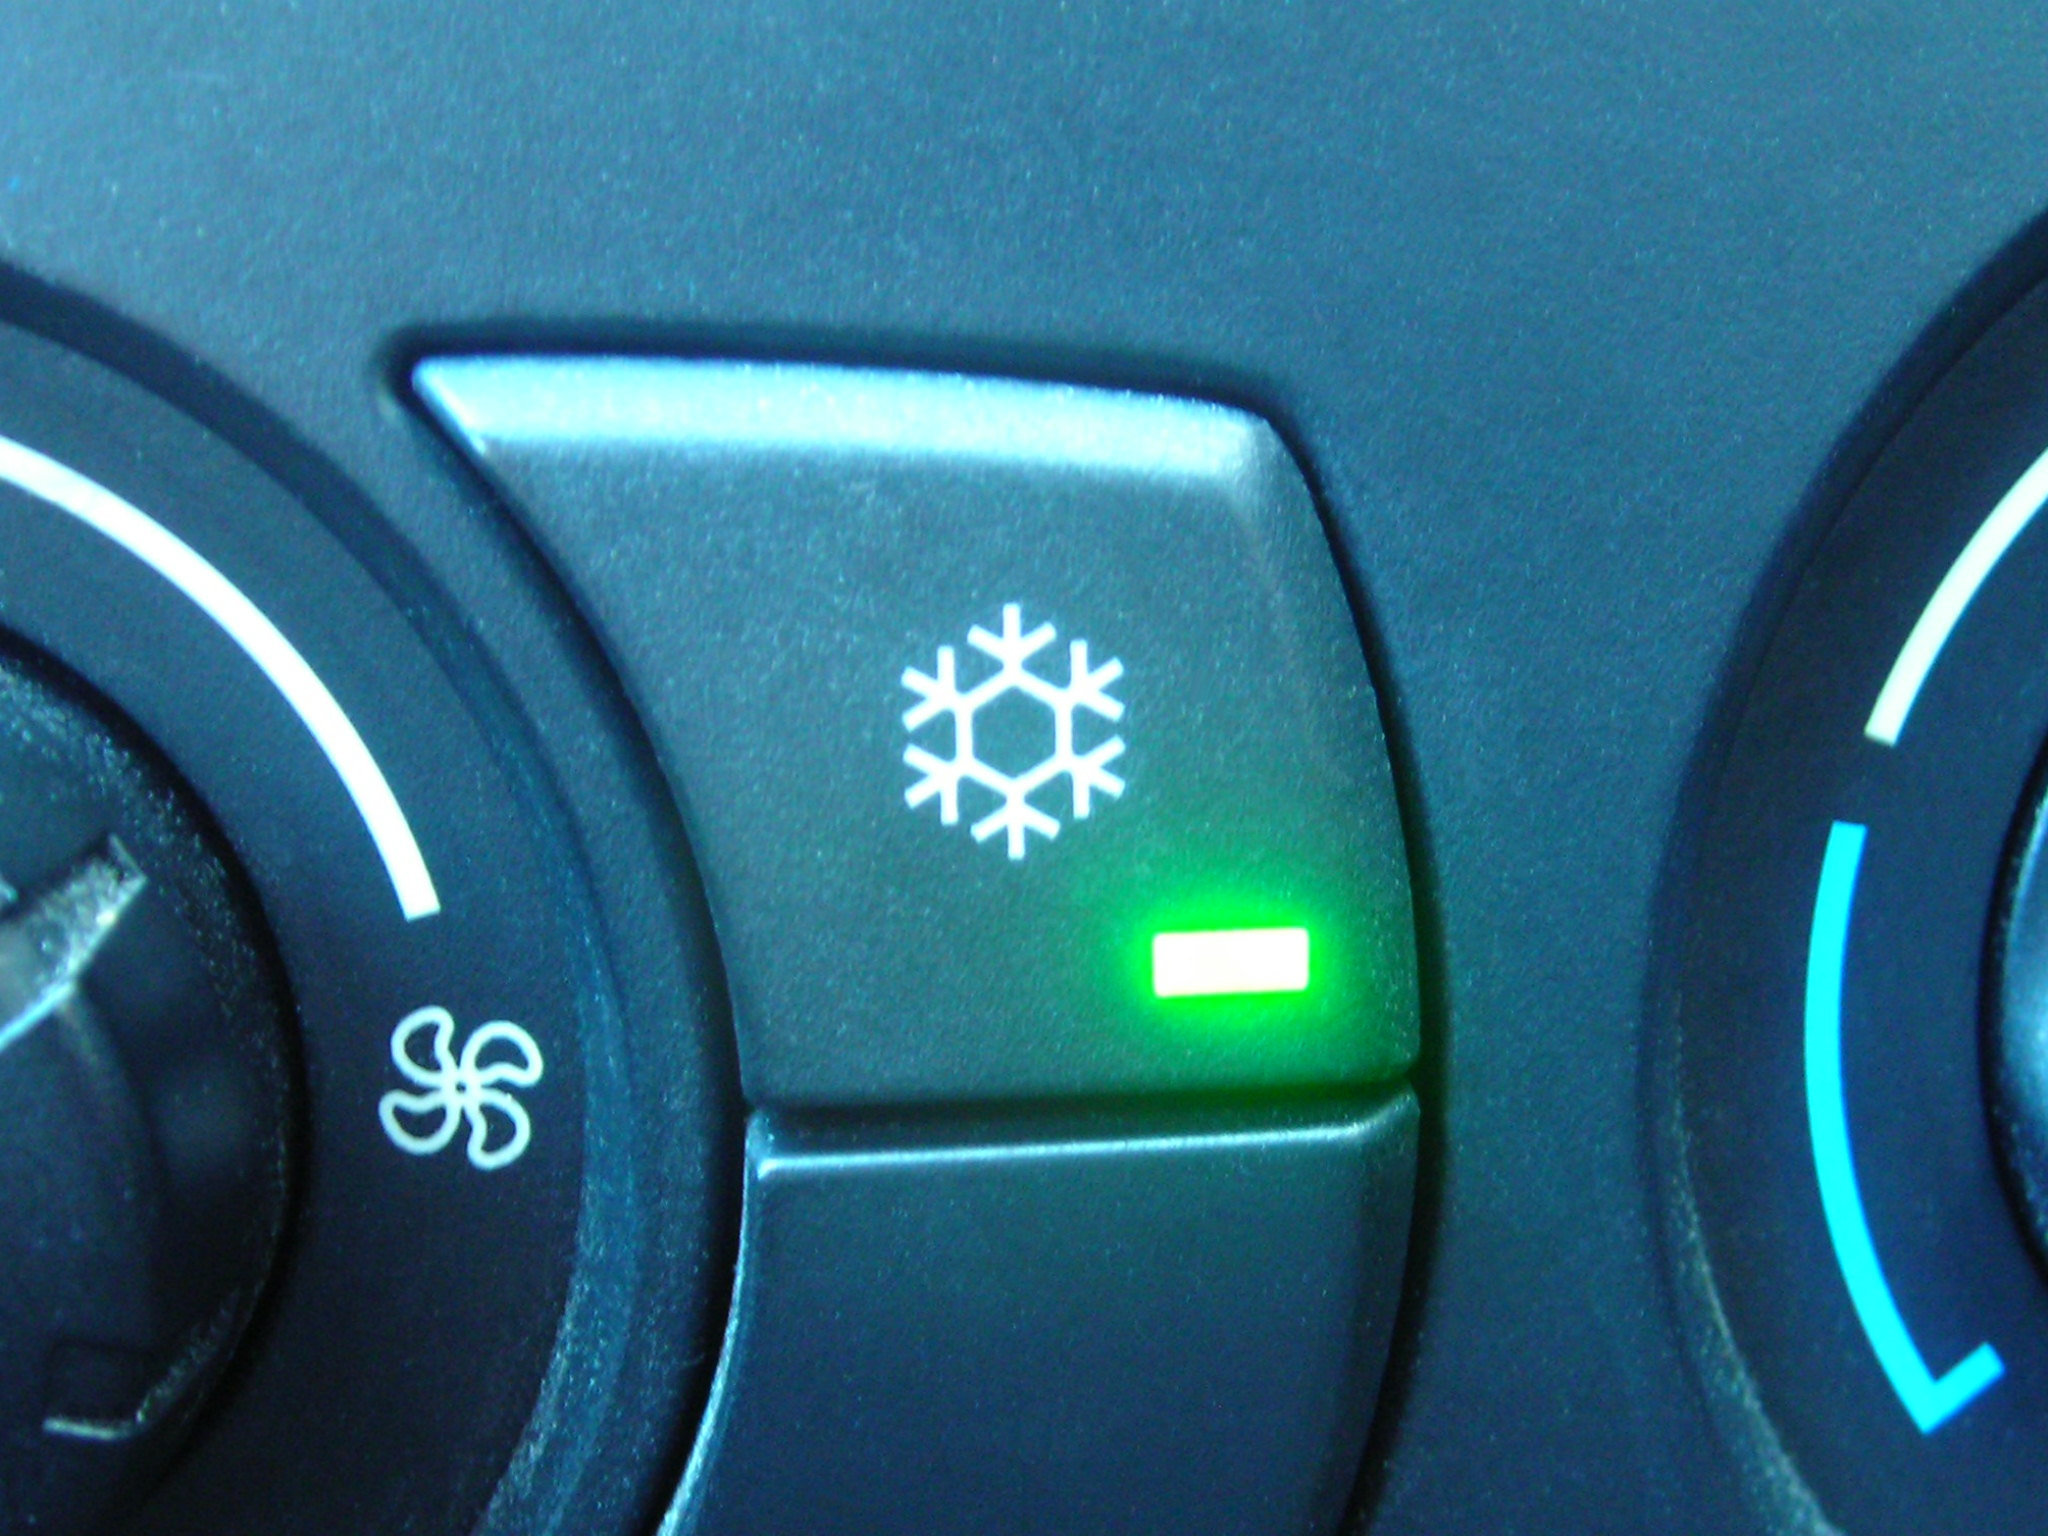 car air con controls on dashboard